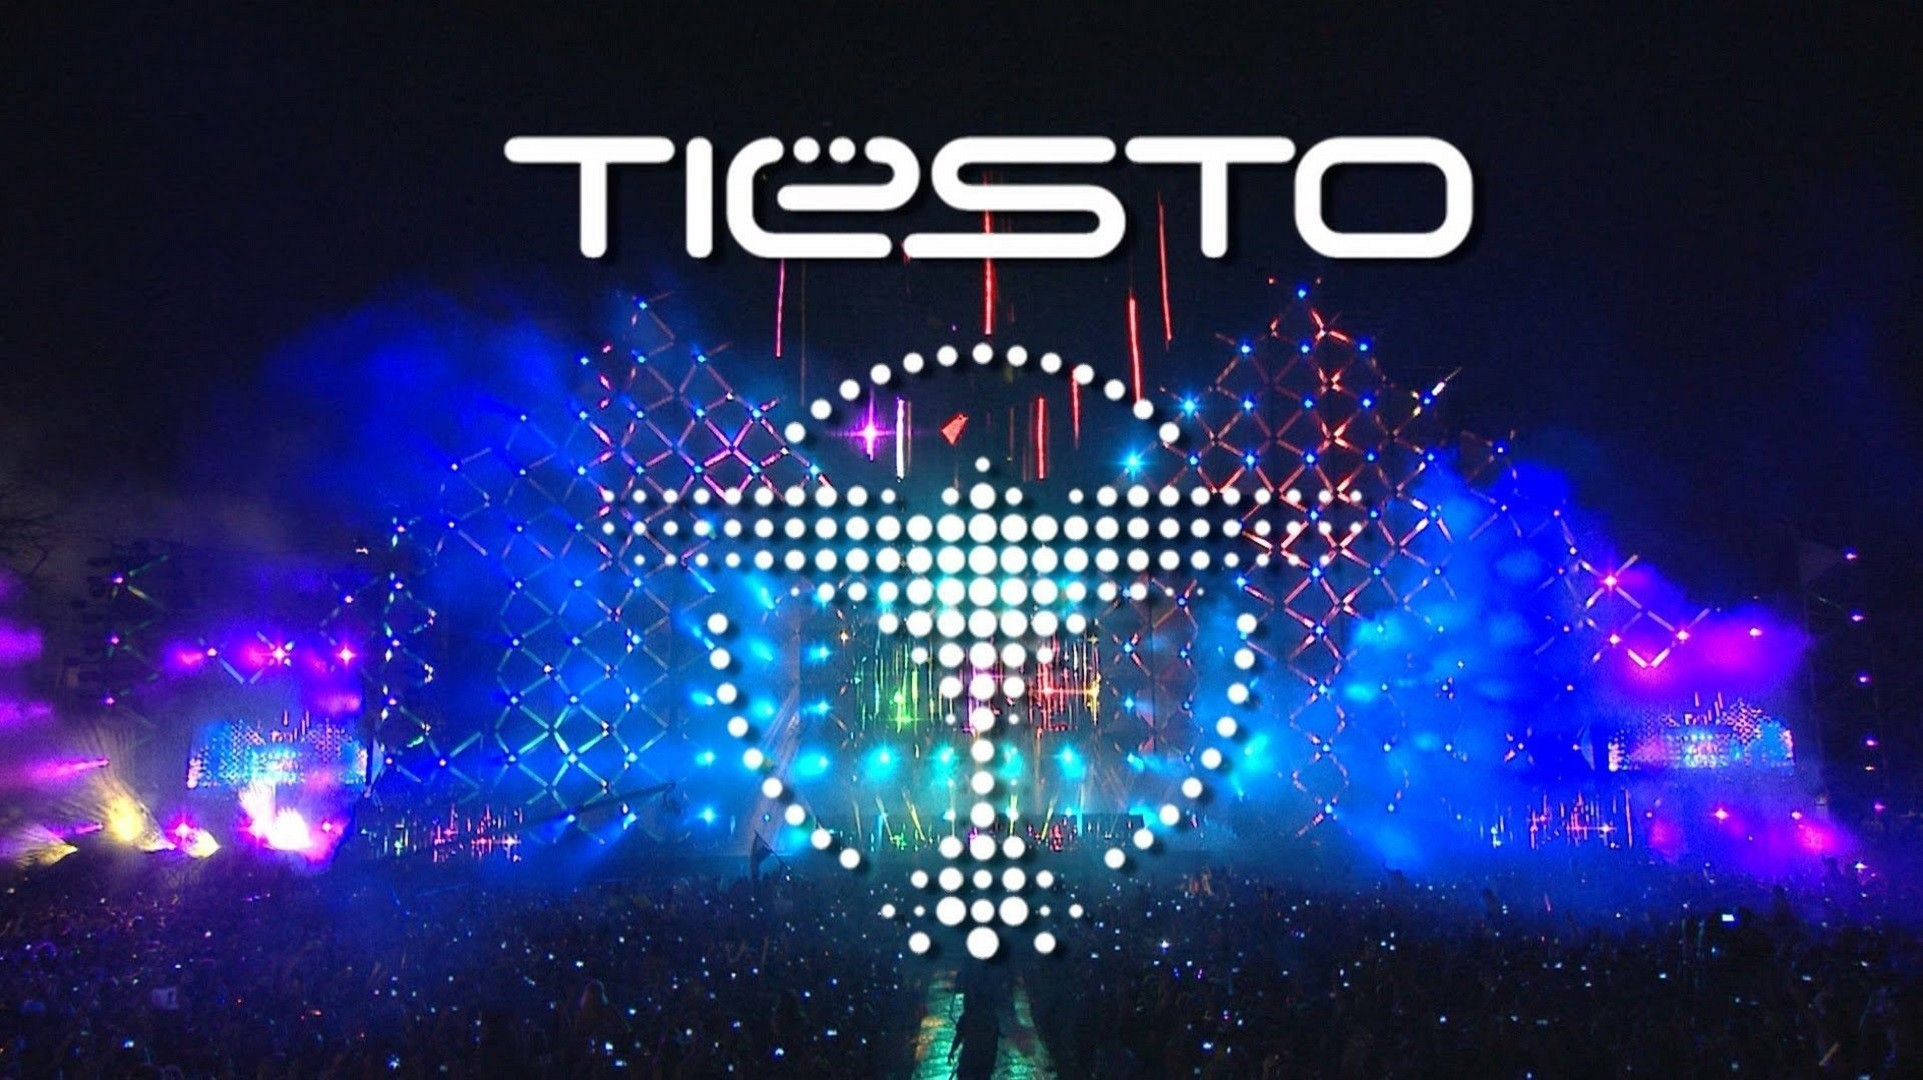 Res: 1923x1080, V.49 Tiesto HD Wallpaper - Tiesto HD Images